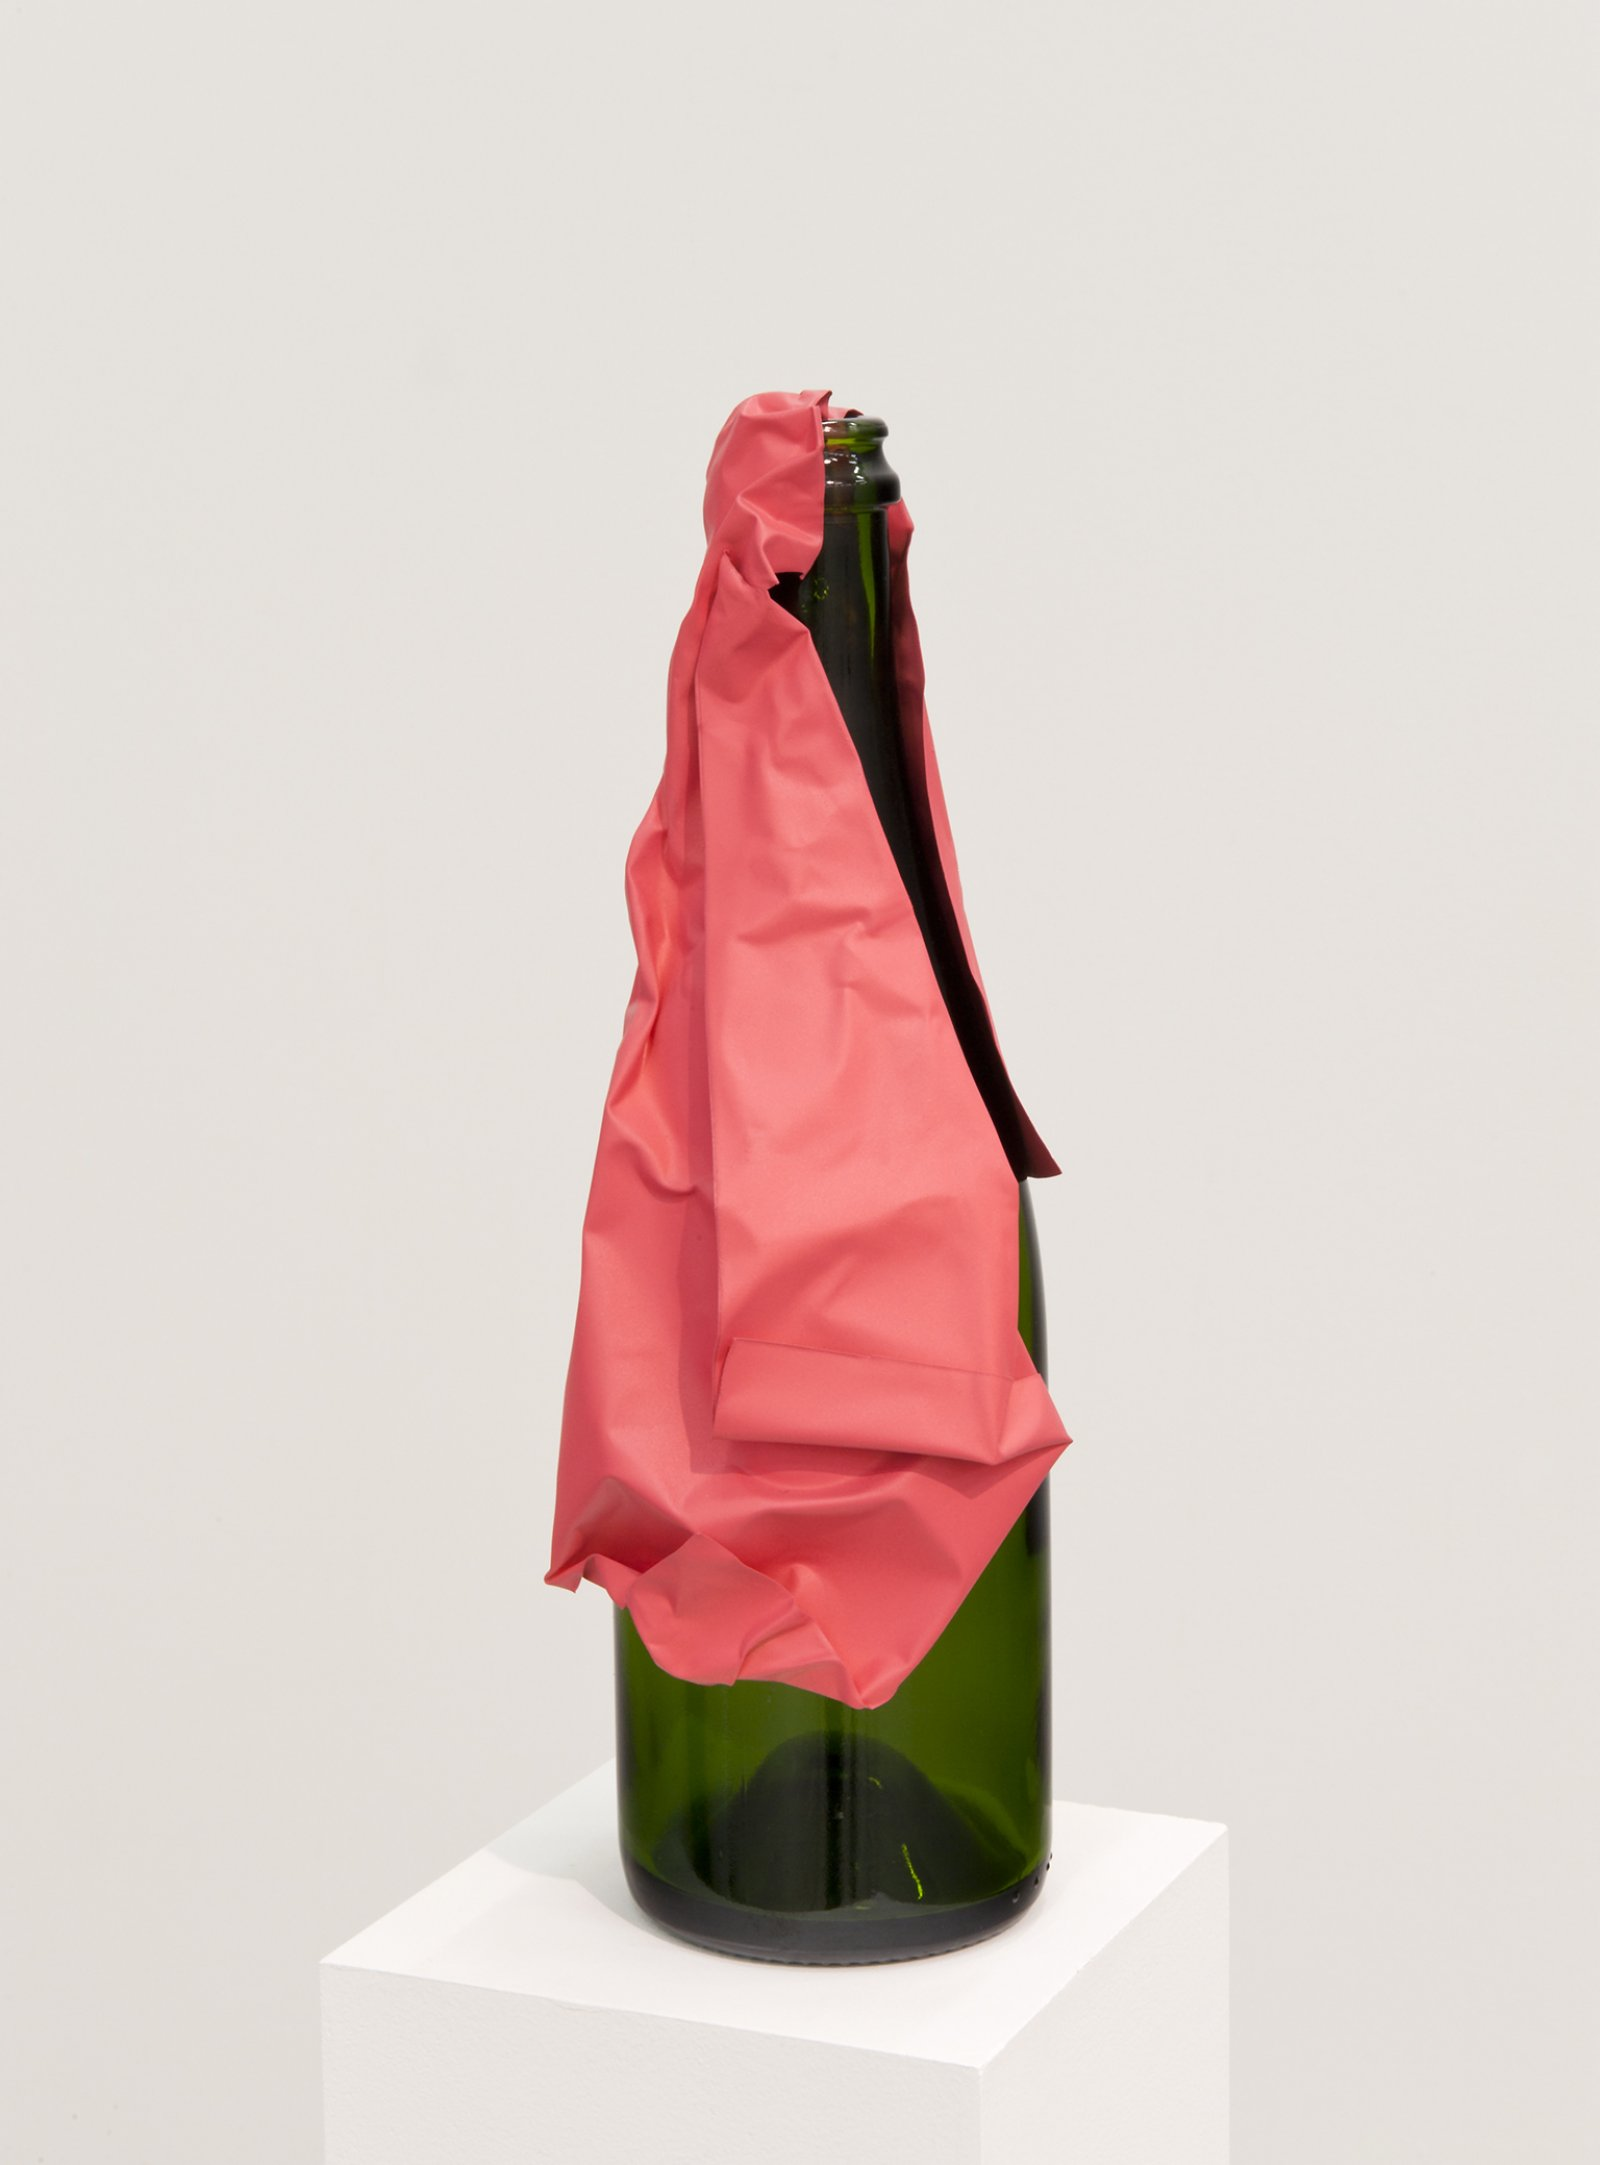 ​Judy Radul, Object Analysis Spectator Poem (Bottle), 2012, painted copper, green glass bottle, colour photograph, bottle: 13 x 4 x 4 in. (32 x 9 x 9 cm), photo: 8 x 11 x 5 in. (20 x 28 x 13 cm)   by Judy Radul